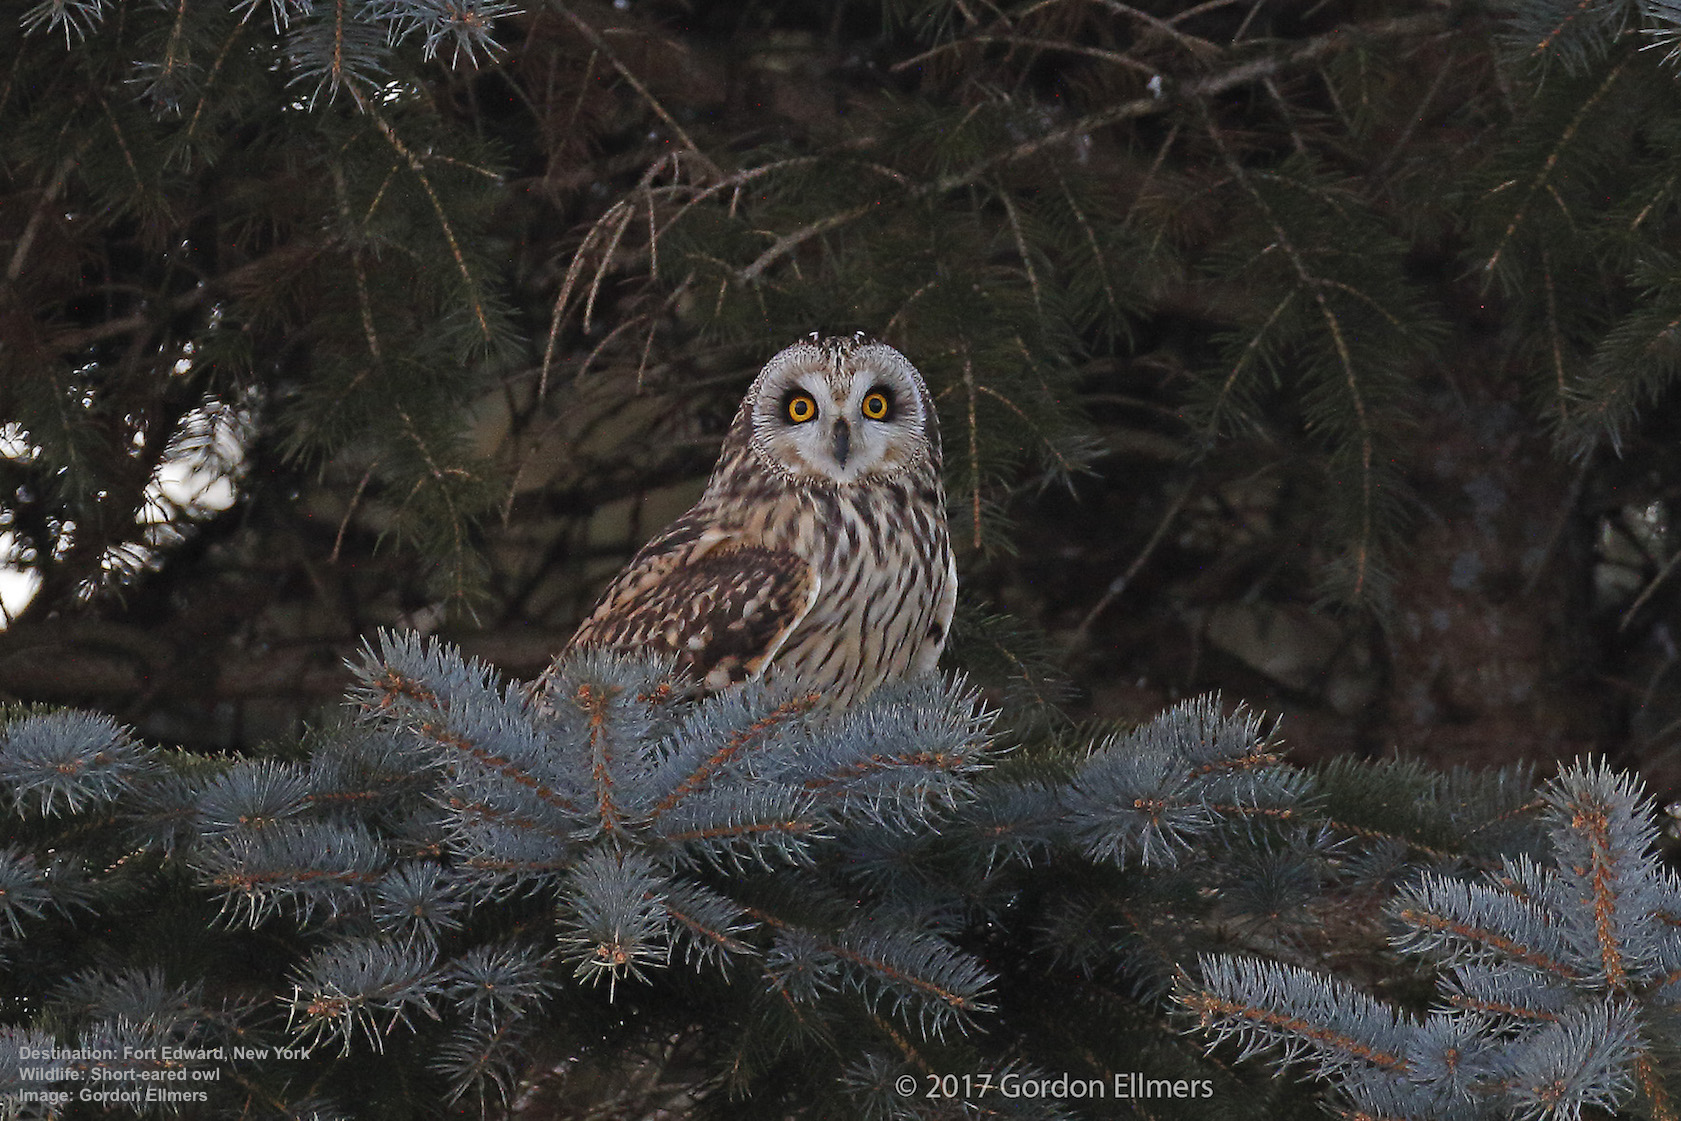 THREATENED SHORT EARED OWLS RECENTLY THEY RETURNED TO WINTER IN THE WASHINGTON COUNTY GRASSLANDS OF FORT EDWARD - BUT TOO MUCH NOISE FROM WELL-MEANING OWL LOVERS HAS ALREADY SENT THEM FLYING. USE THE RESPONSIBLE VIEWING PRACTICES BELOW - AND ALWAYS ADD COMMON SENSE. IMAGE: GORDON ELLMERS.